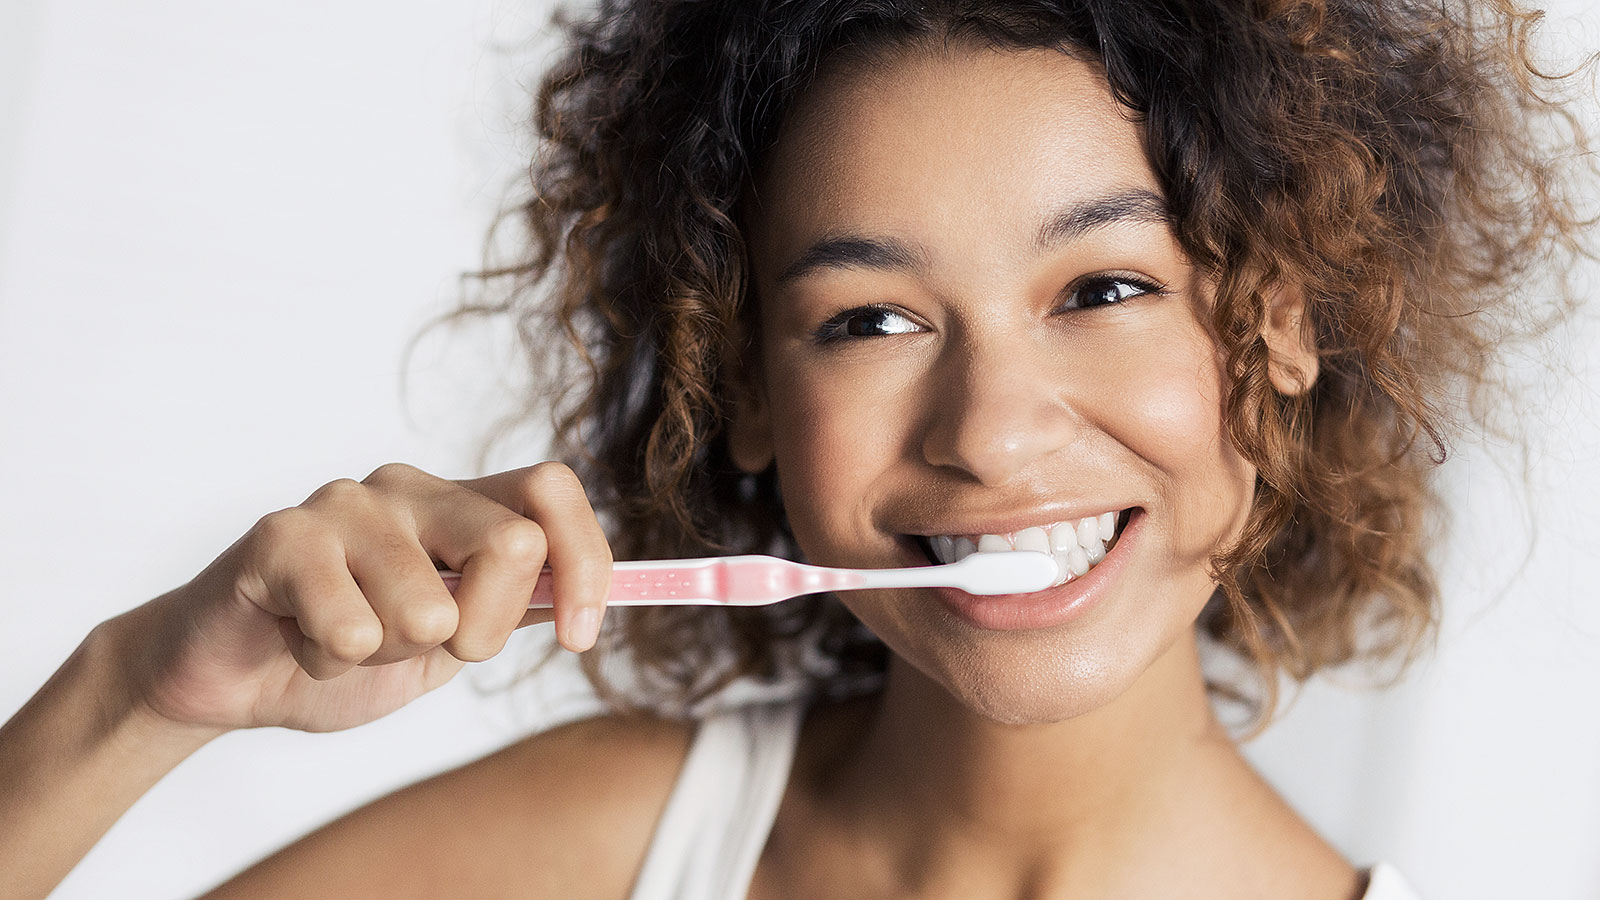 Brush and floss twice a day to postpone this scary disease